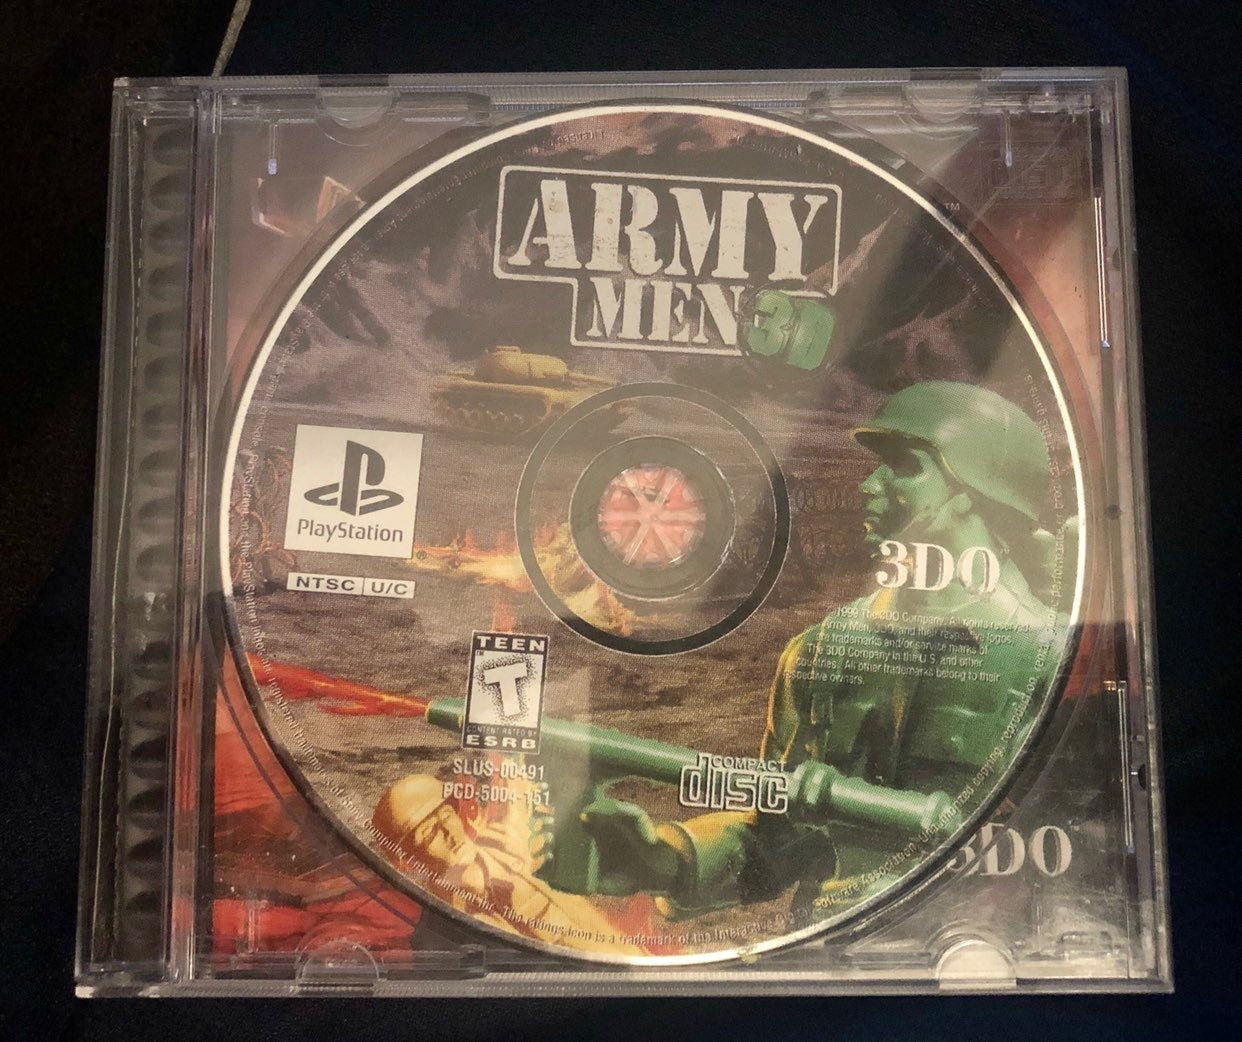 Playstation 1 Army Men 3D Disc Only